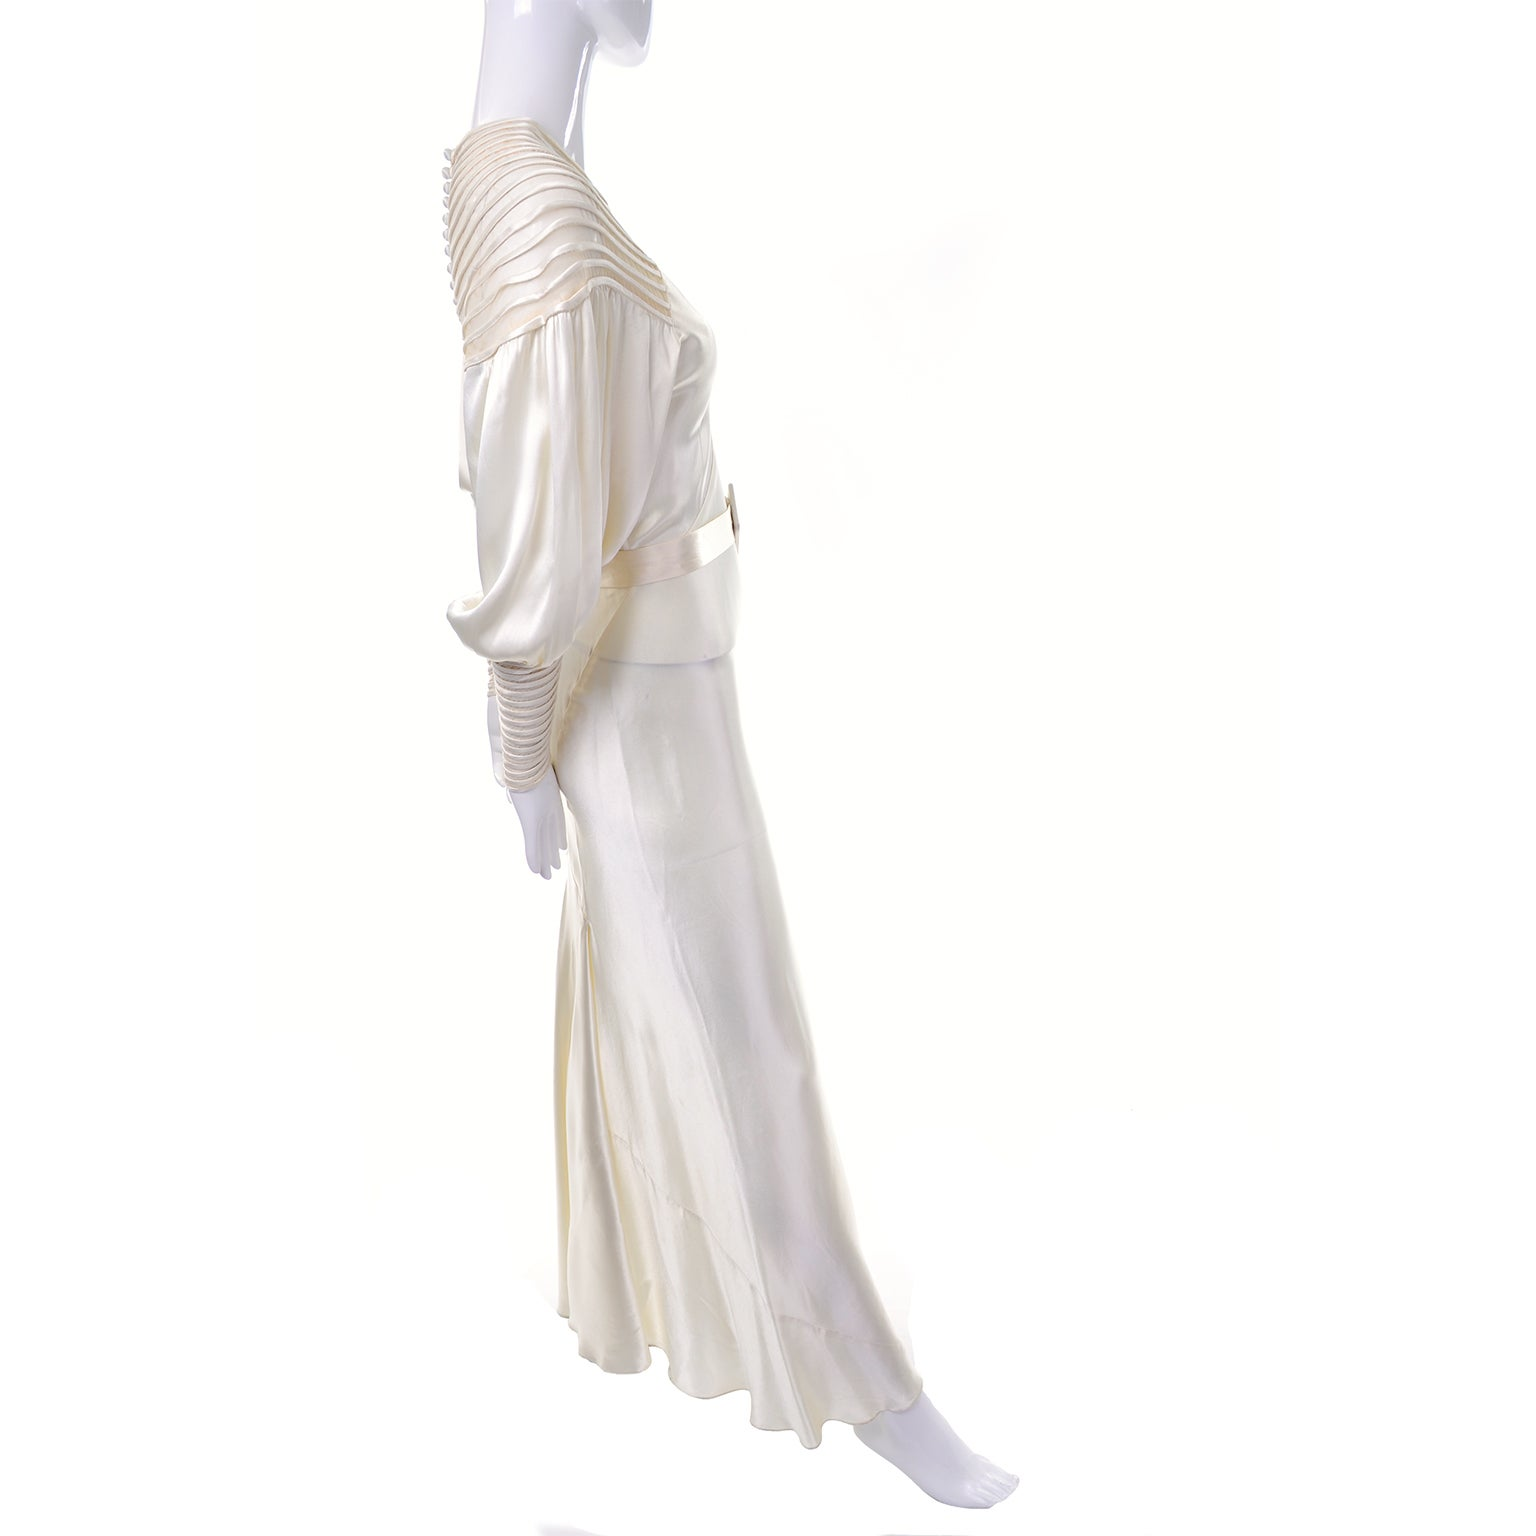 384dbeda164d Ivory Slipper Satin Wedding Dress Gown Leg of Mutton Sleeves, 1930s Kate  Moss at 1stdibs